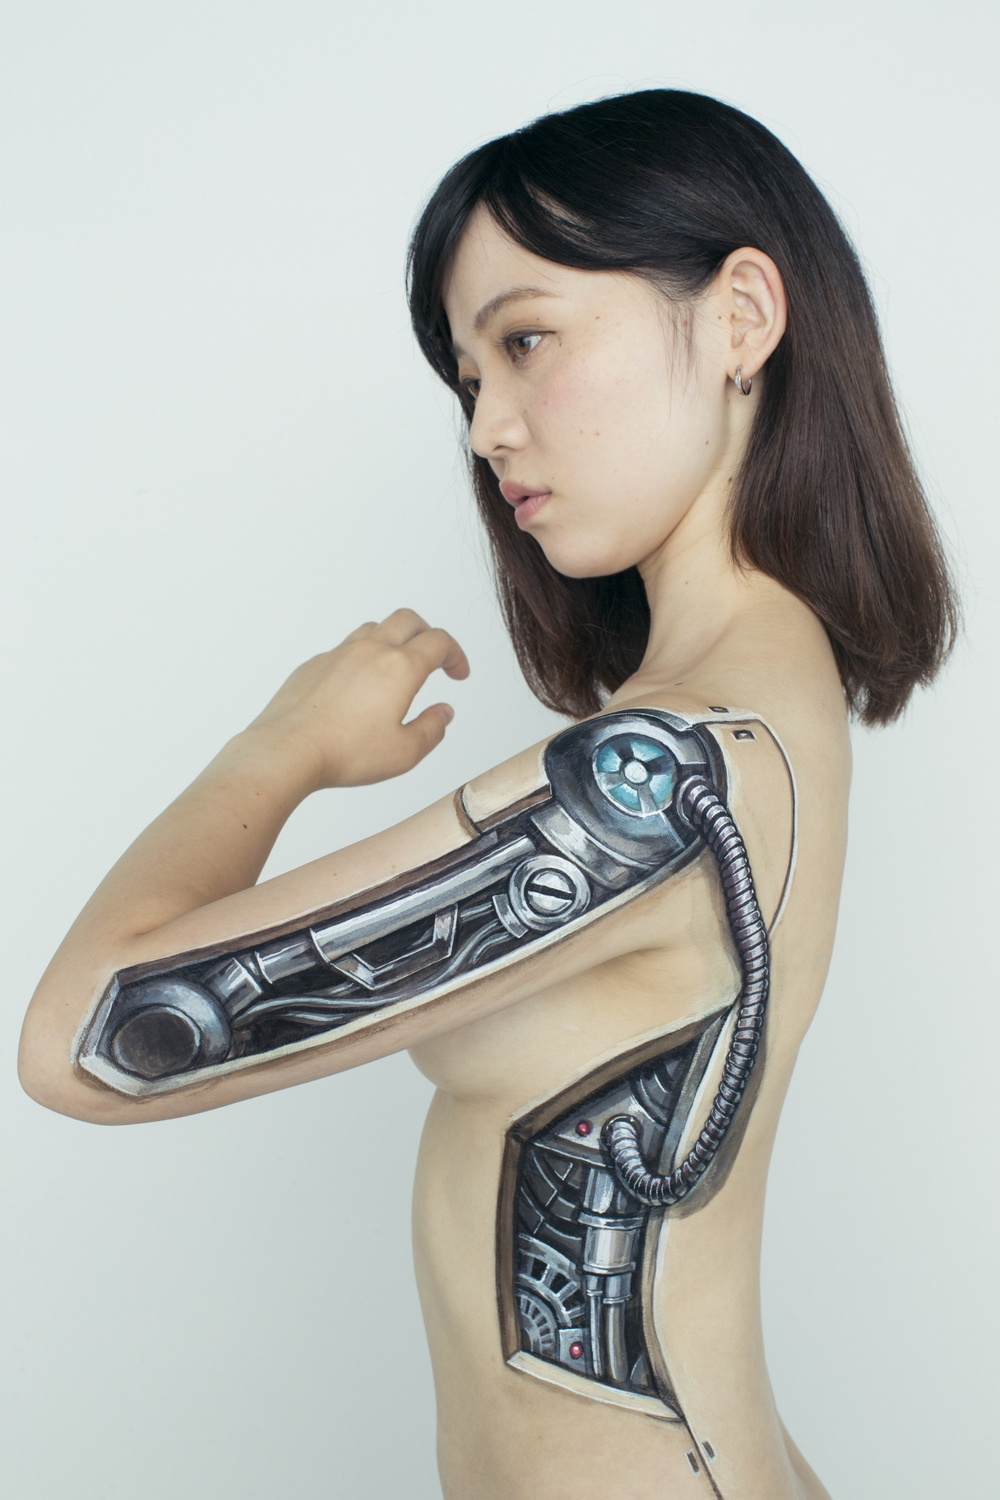 16-Super-Flash-Girls-Hikaru-Cho-チョーヒカル-Body-Painting-Her-way-Through-University-www-designstack-co